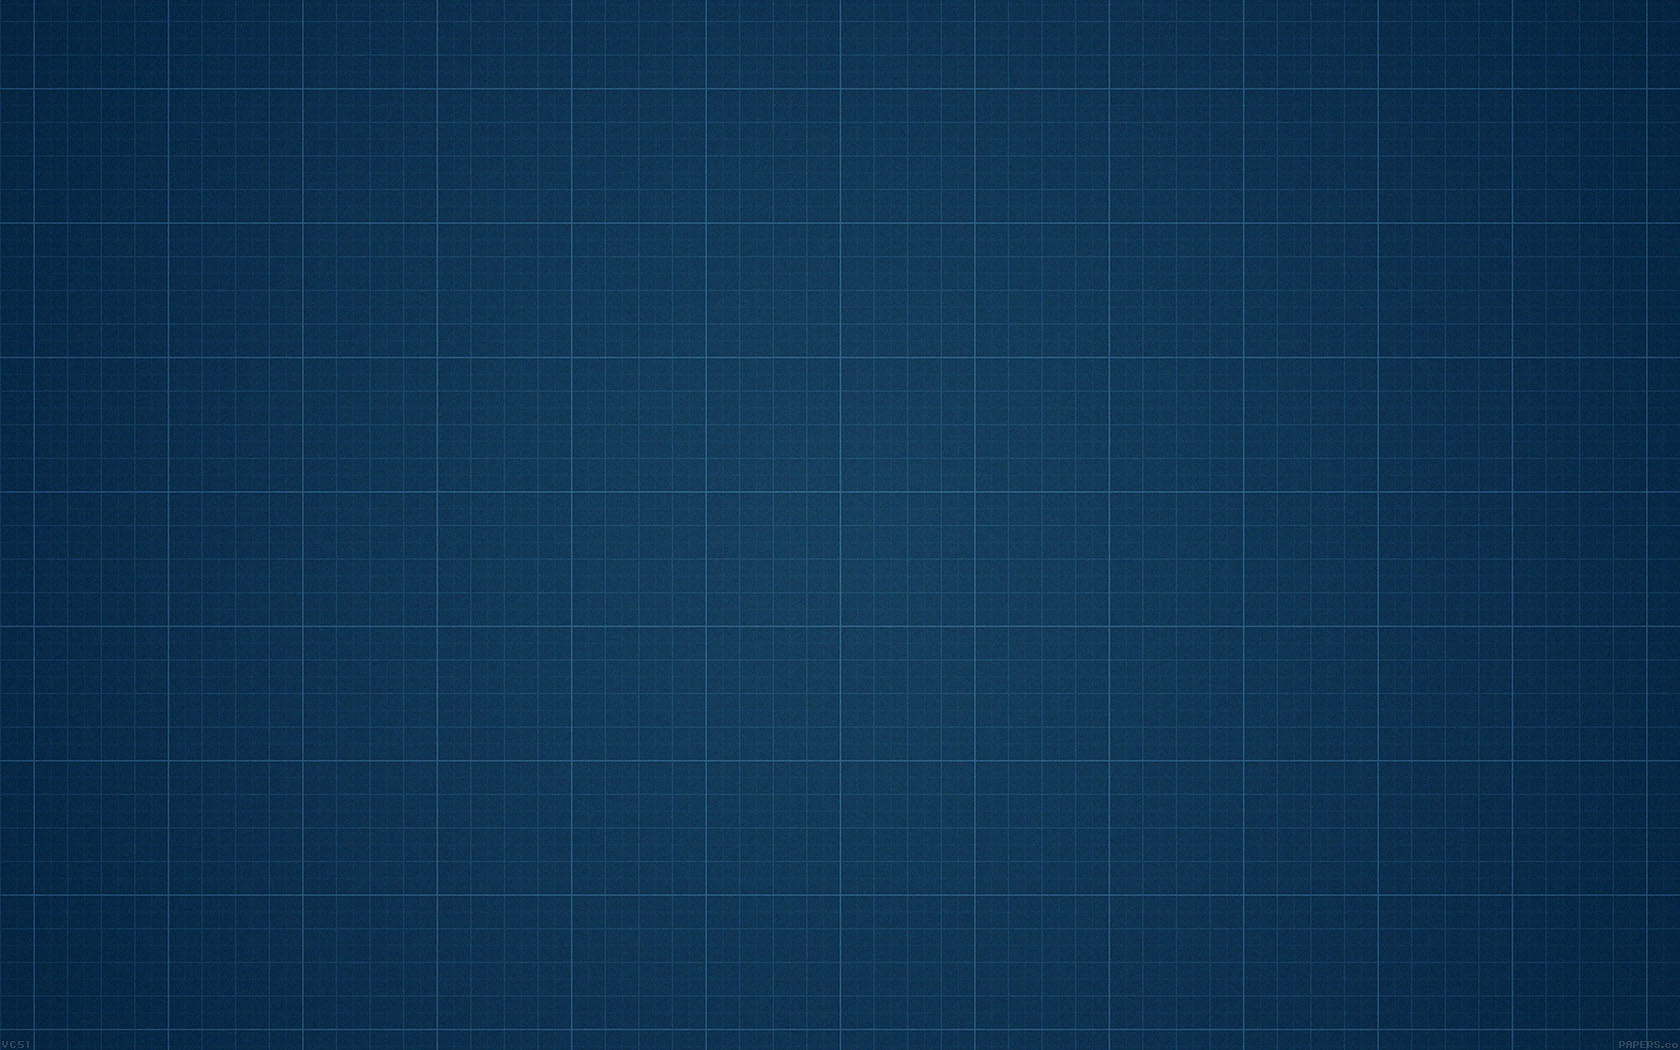 Blueprint Wallpaper Iphone 7 Vc51 Blueprint Technical Pattern Papers Co